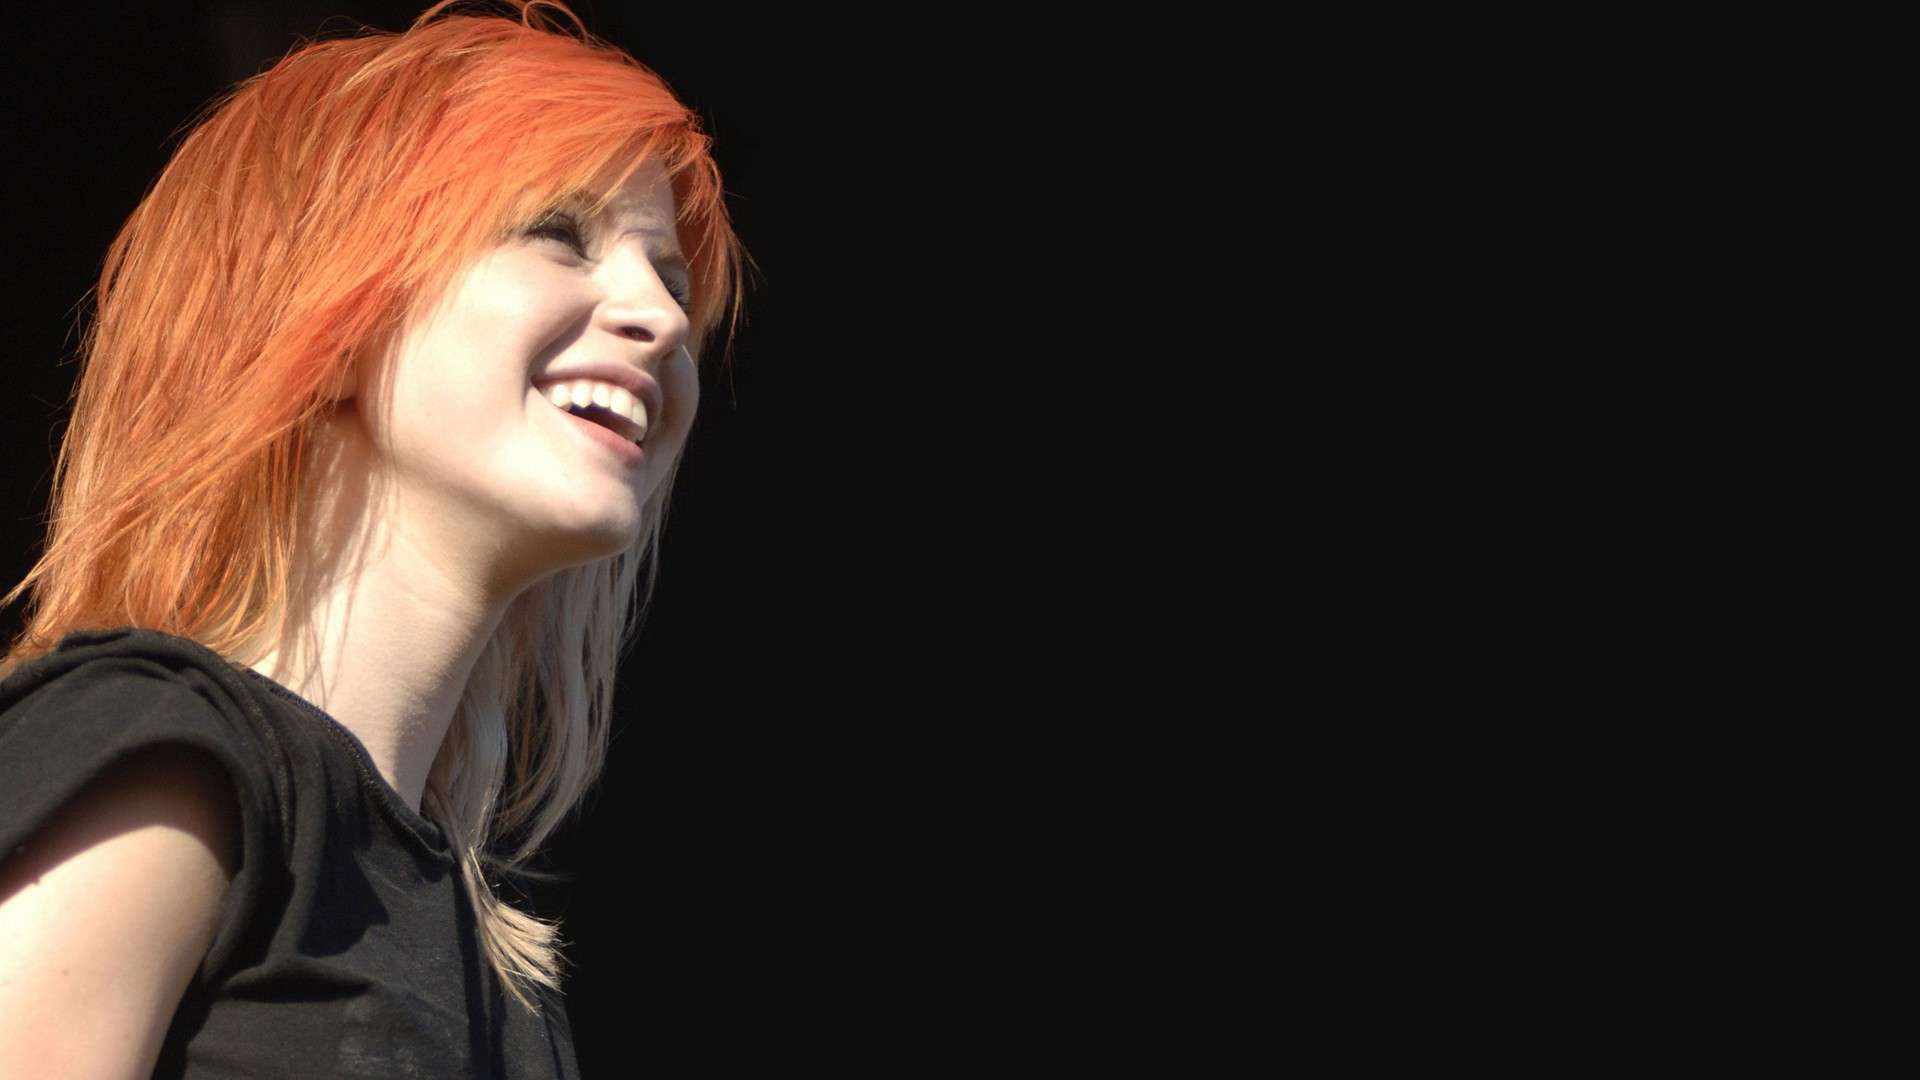 Hayley Williams Wallpapers and Background Images   stmednet 1920x1080